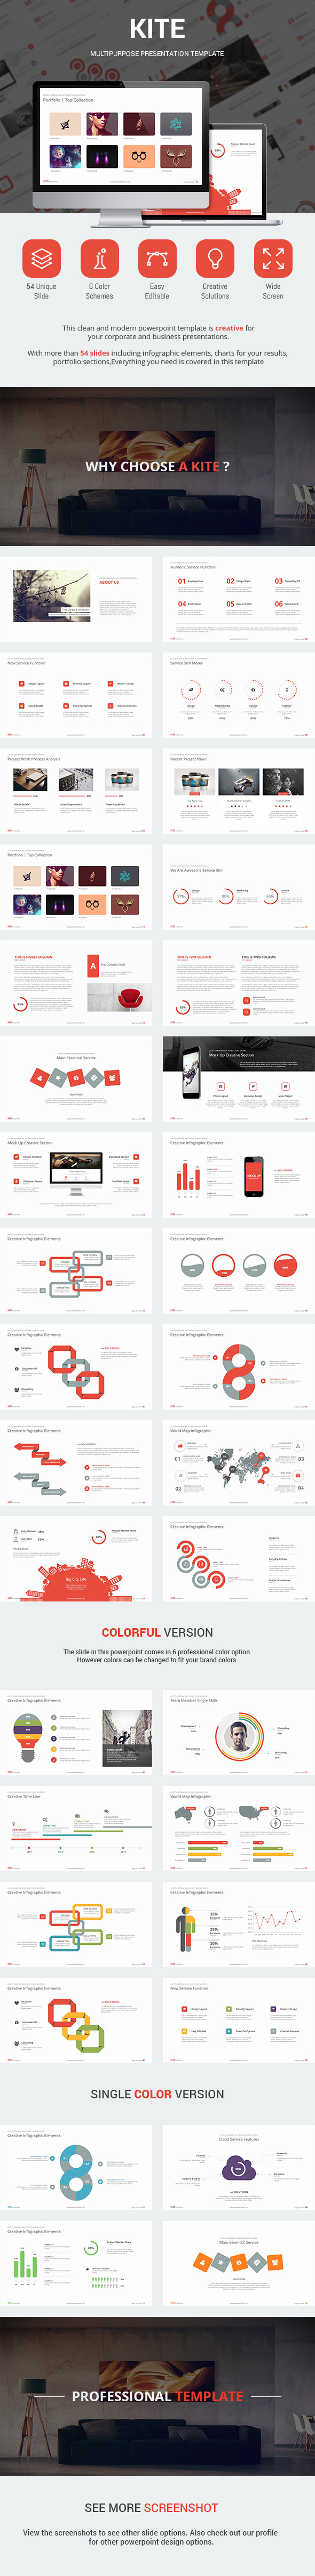 Kite - Presentation Template - Business PowerPoint Templates